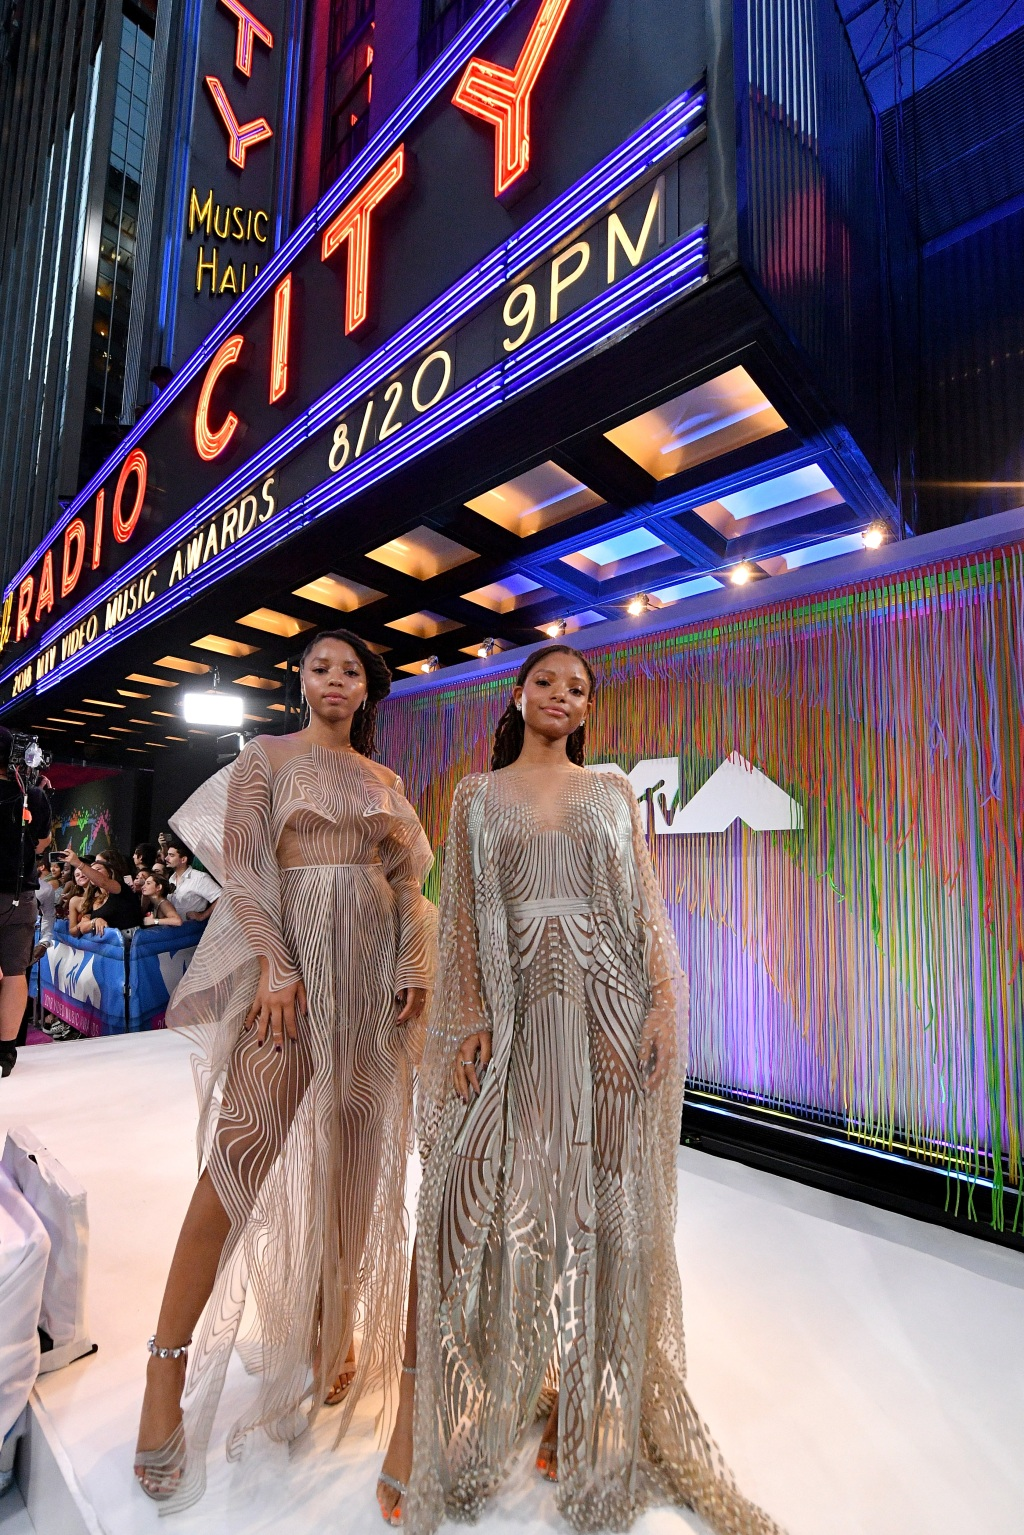 Chloe X Halle attend the 2018 MTV Video Music Awards at Radio City Music Hall on August 20, 2018 in New York City. (Photo by Dia Dipasupil/Getty Images for MTV)